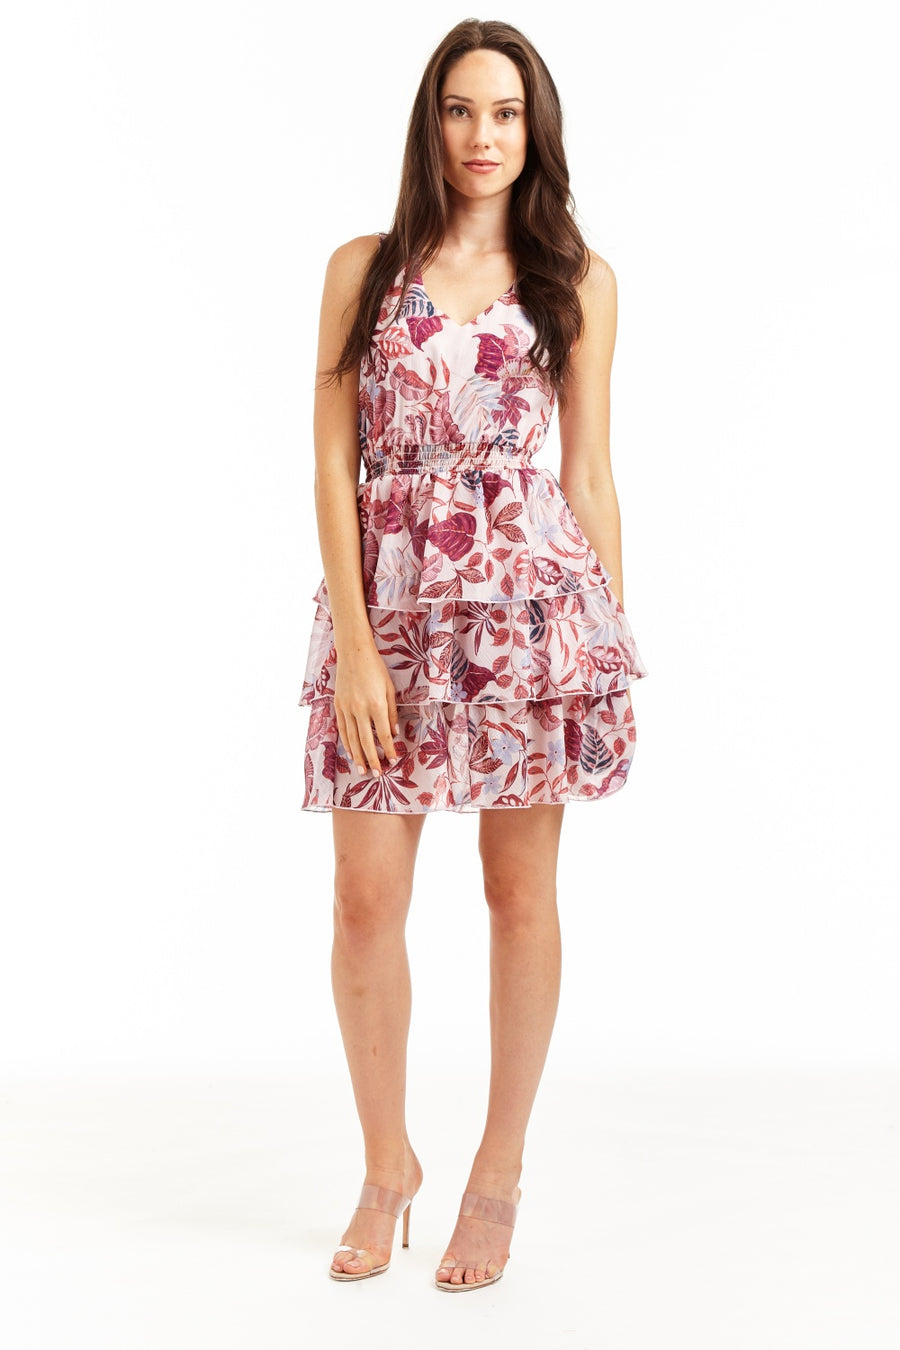 Drew Freda Ruffled Dress